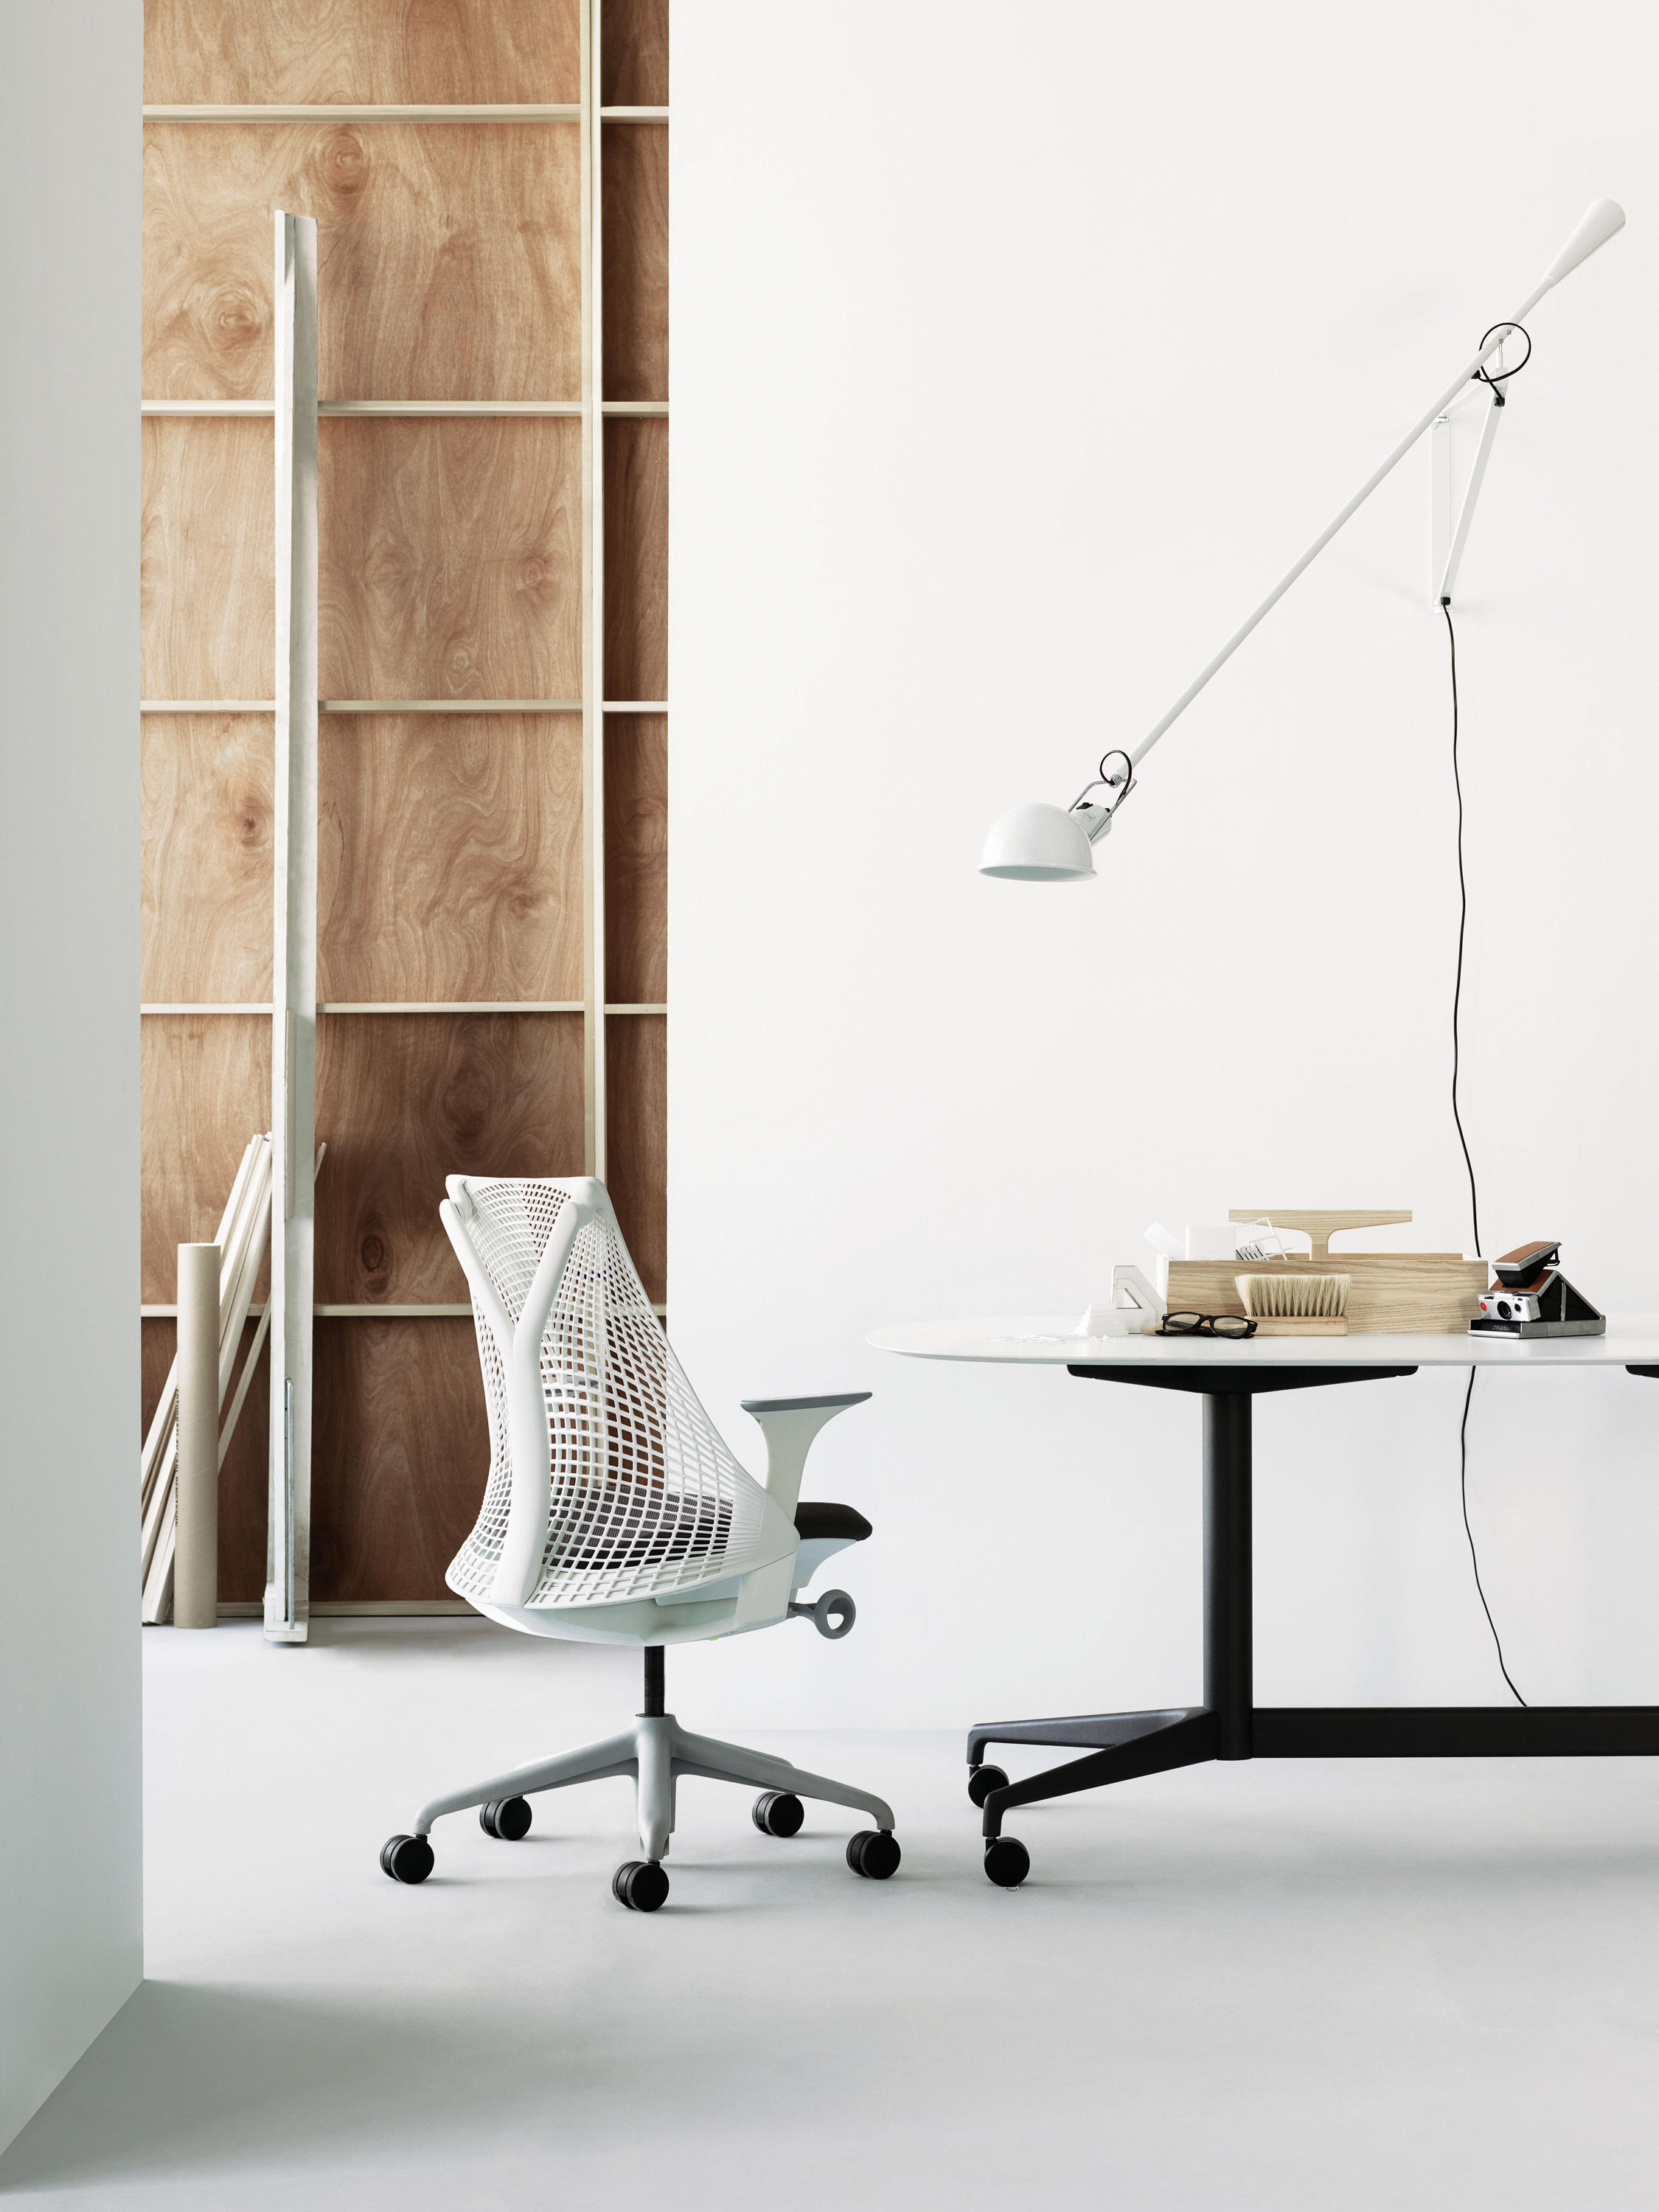 ... Sayl Chair by Herman Miller & SAYL CHAIR - Office chairs from Herman Miller | Architonic